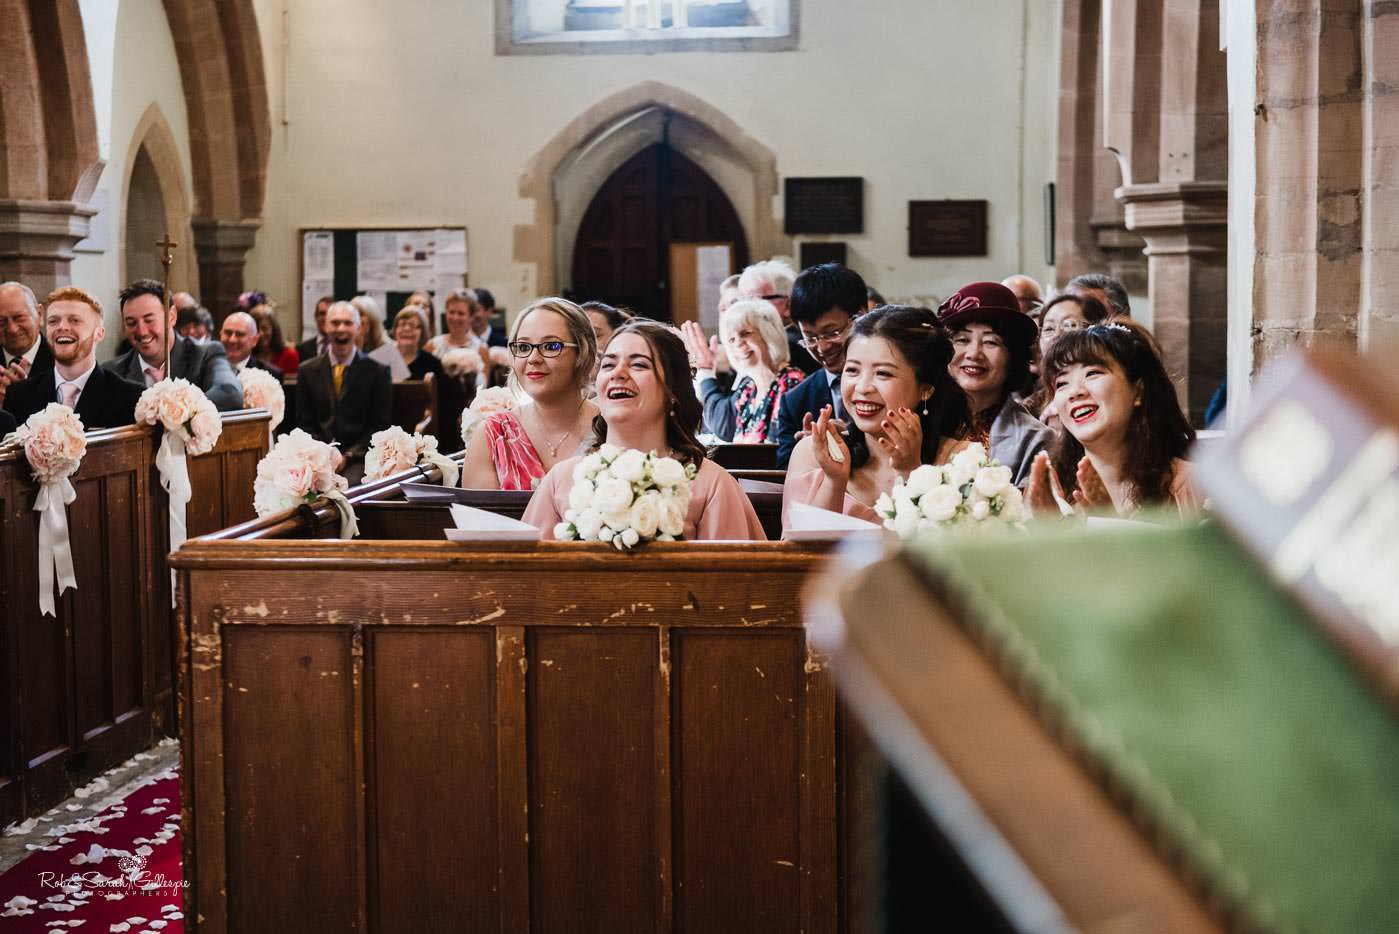 Wedding ceremony at St Peter's church Bourton-on-Dunsmore